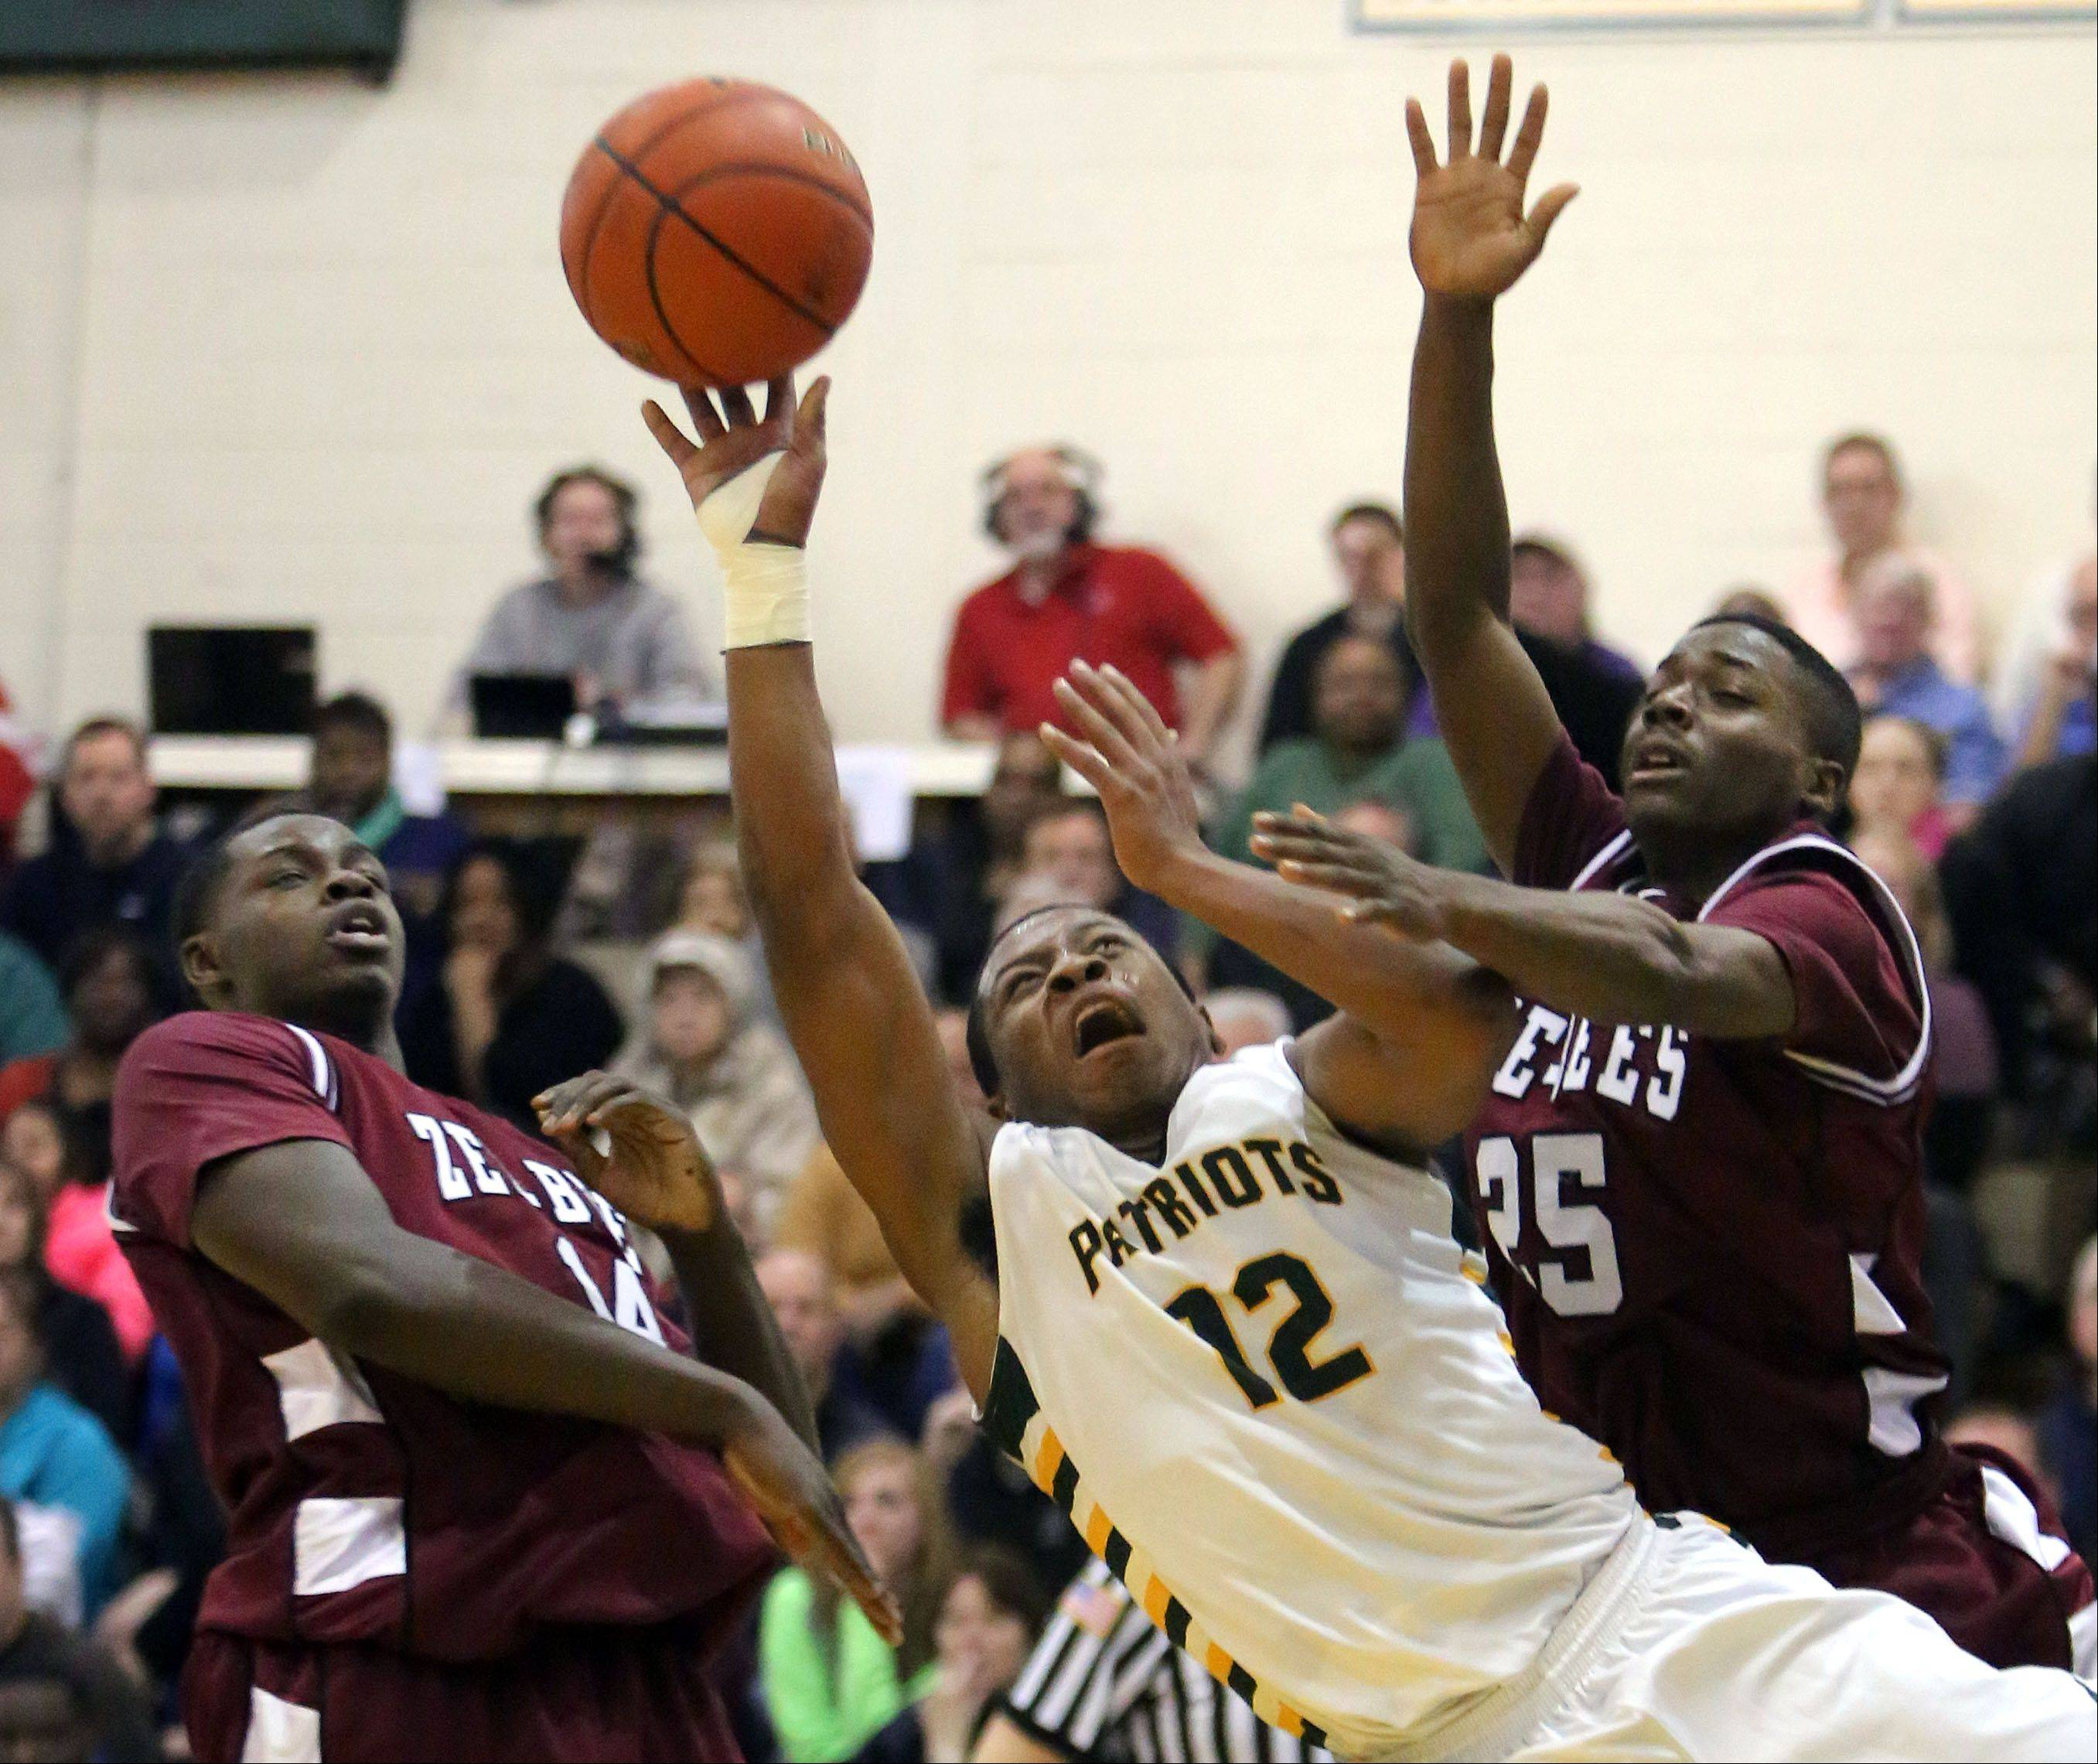 Stevenson's Matt Johnson splits in between Zion-Benton's Milik Yarbrough, left, and Fred Calvert .